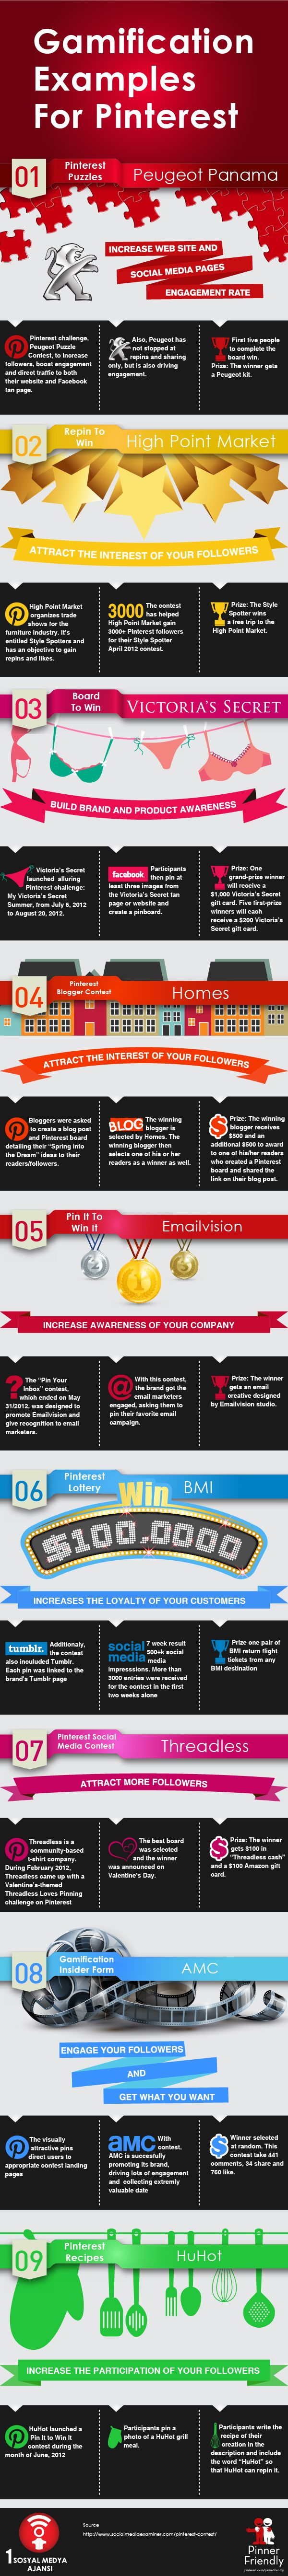 #Gamification Examples for #Pinterest #Infographic - Always good to get a group of examples!